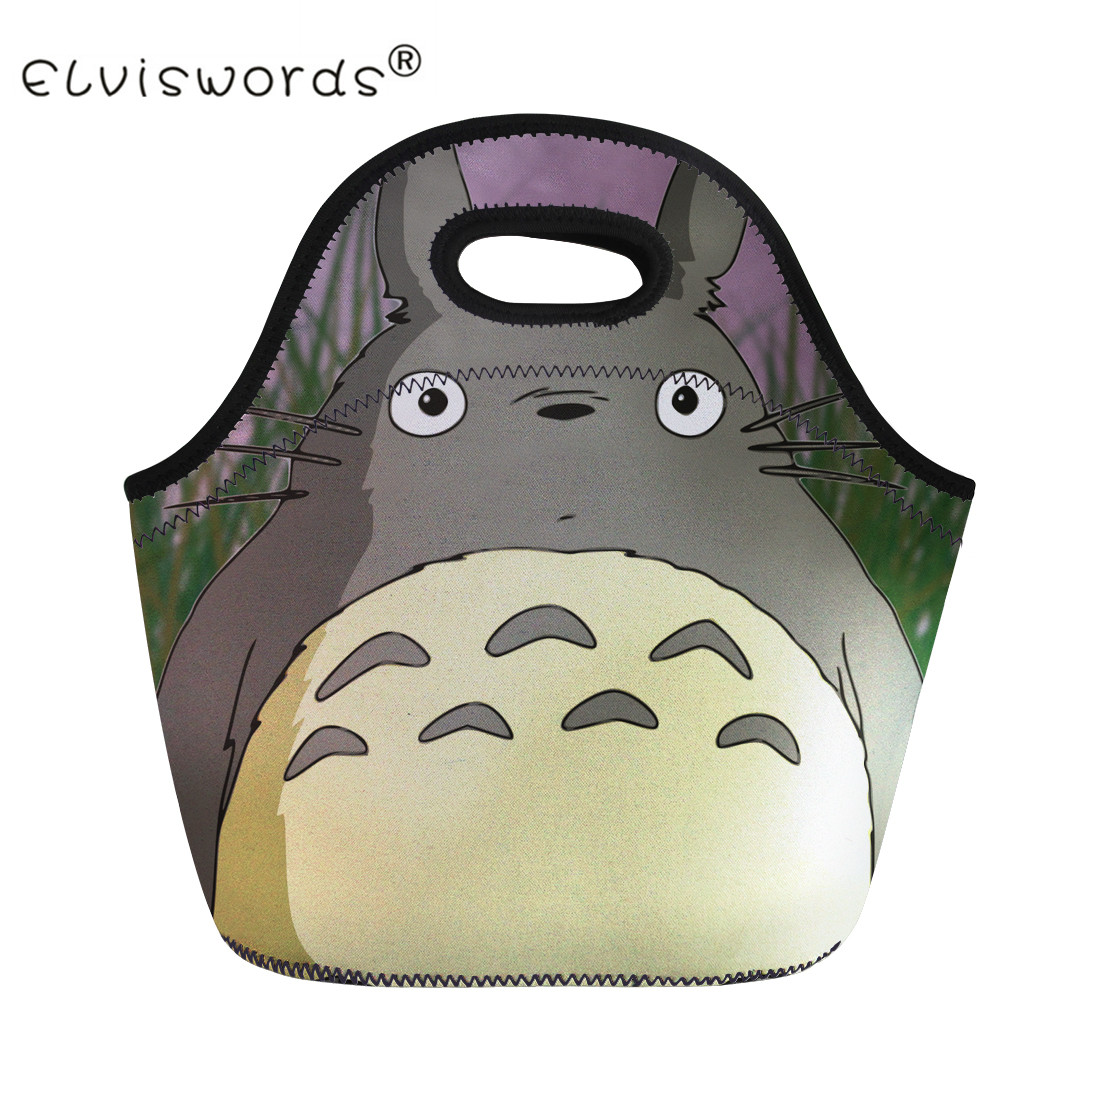 ELVISWORDS Totoro Print Thermal Lunch Bag for Children Women Beach Tote Bag Kids Girls Boys Food Picnic Insulation Cooler Bag